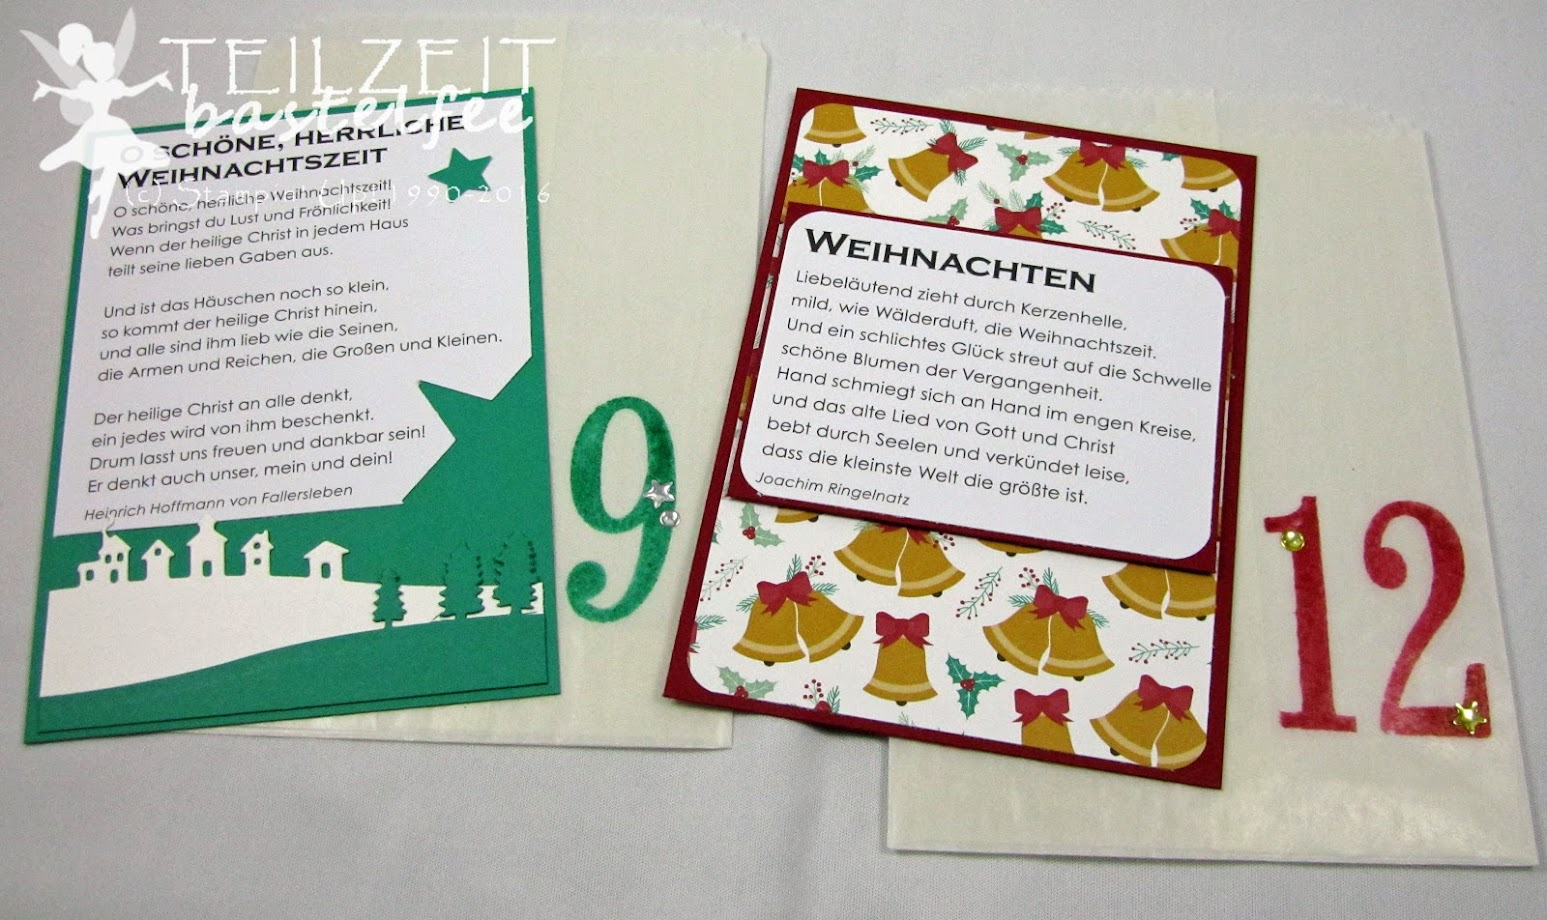 Stampin' Up! – December Inkspirations, Weihnachten, Christmas, Adventskalender, Advent Calendar, Pergamin-Geschenktüten, Glassine Gift Bags, Number of Years, So viele Jahre, Lack-Akzente Metallic, Metallic Enamel Shapes, Ausgestochen weihnachtlich, Cookie Cutters, Gorgeous Grunge, Star Framelits,